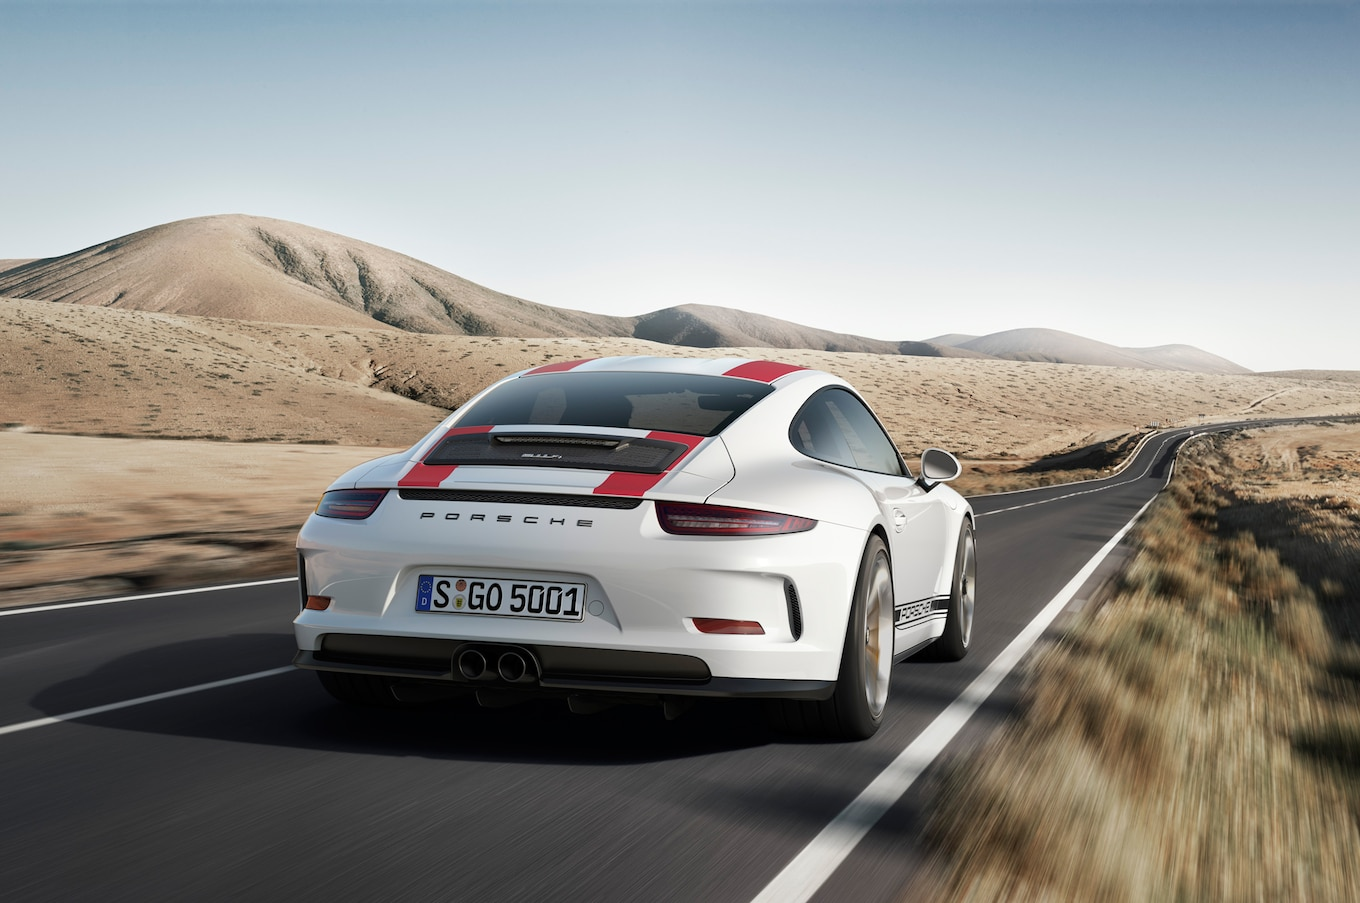 Singer 500 Hp Engine Car Wallpaper 2016 Porsche 911 R Packs 500 Hp And A Manual Motor Trend